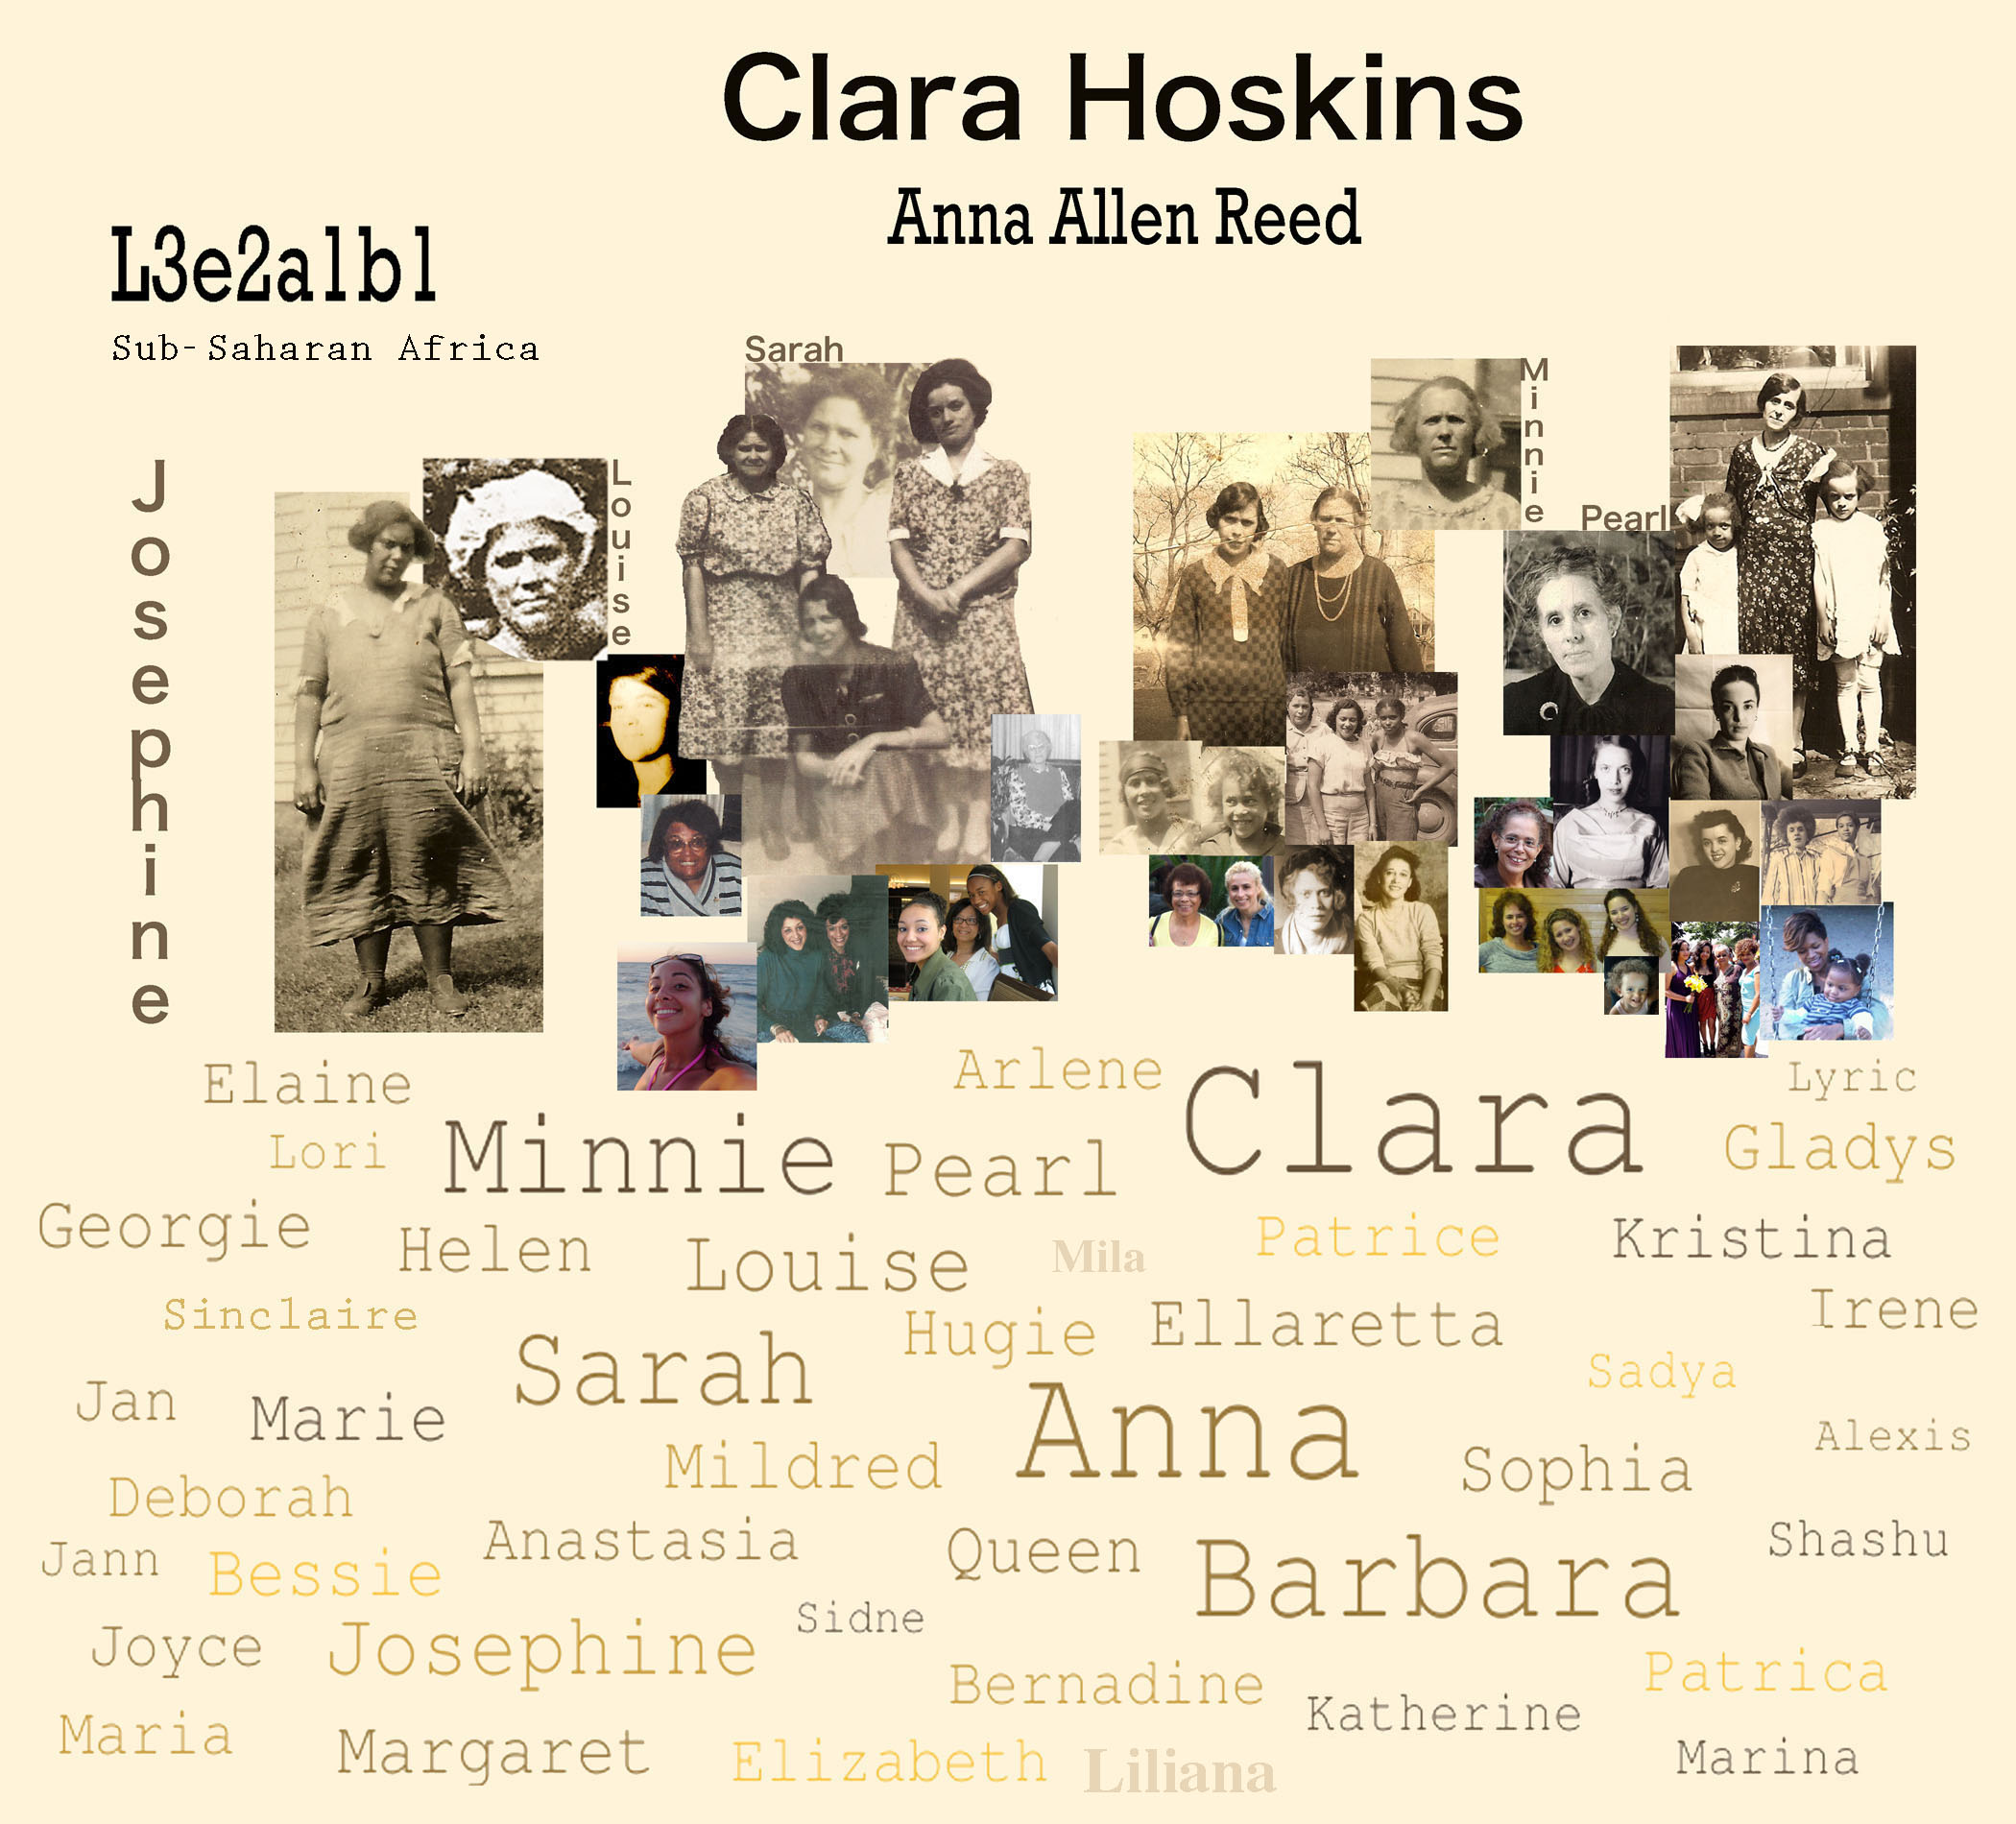 Names and photos of some of those who share Clara's mtdna.